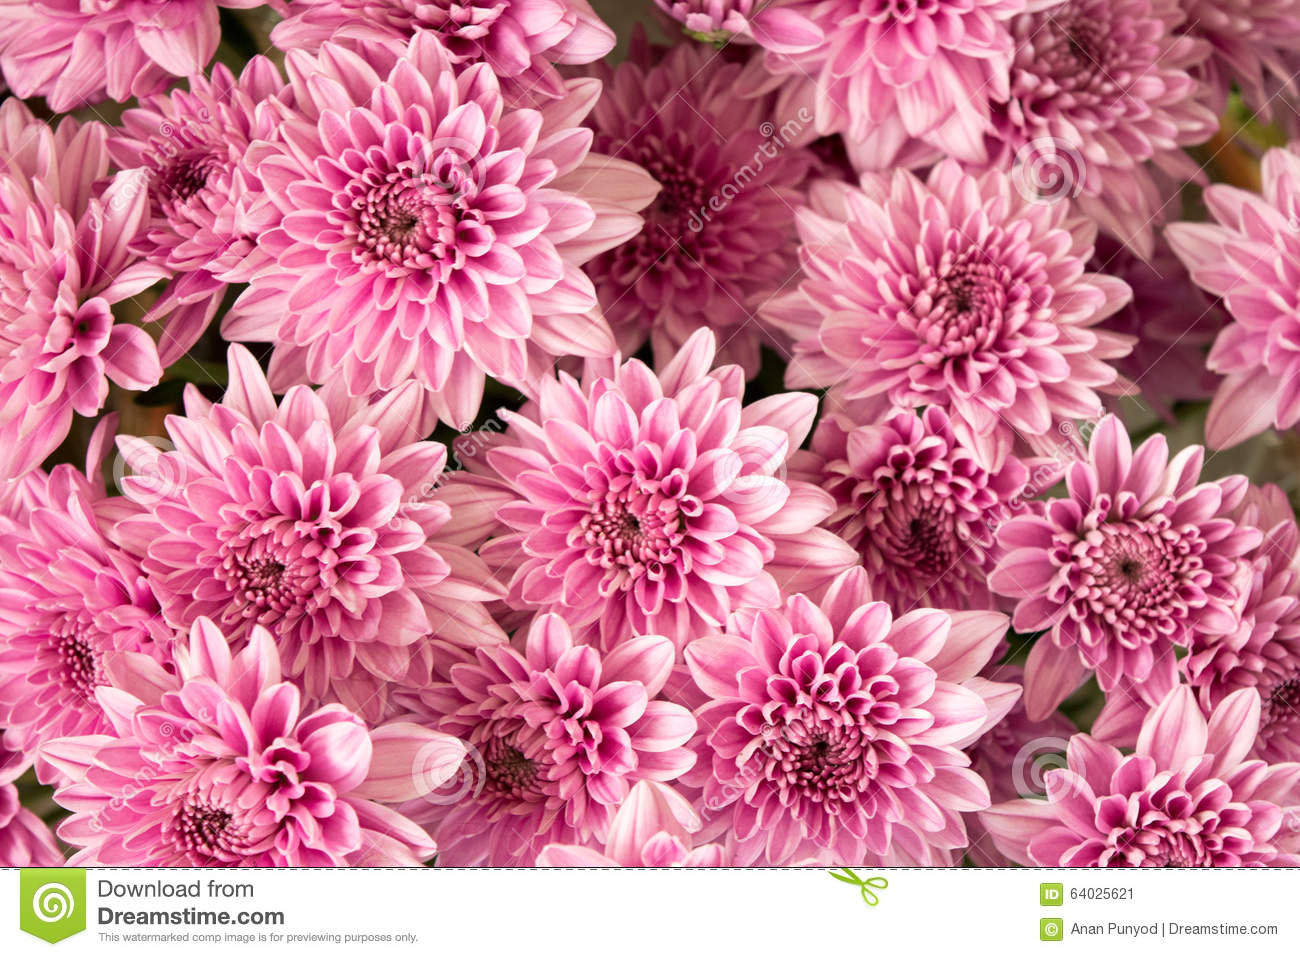 Soft pink purple Chrysanthemum flowers nature abstract background